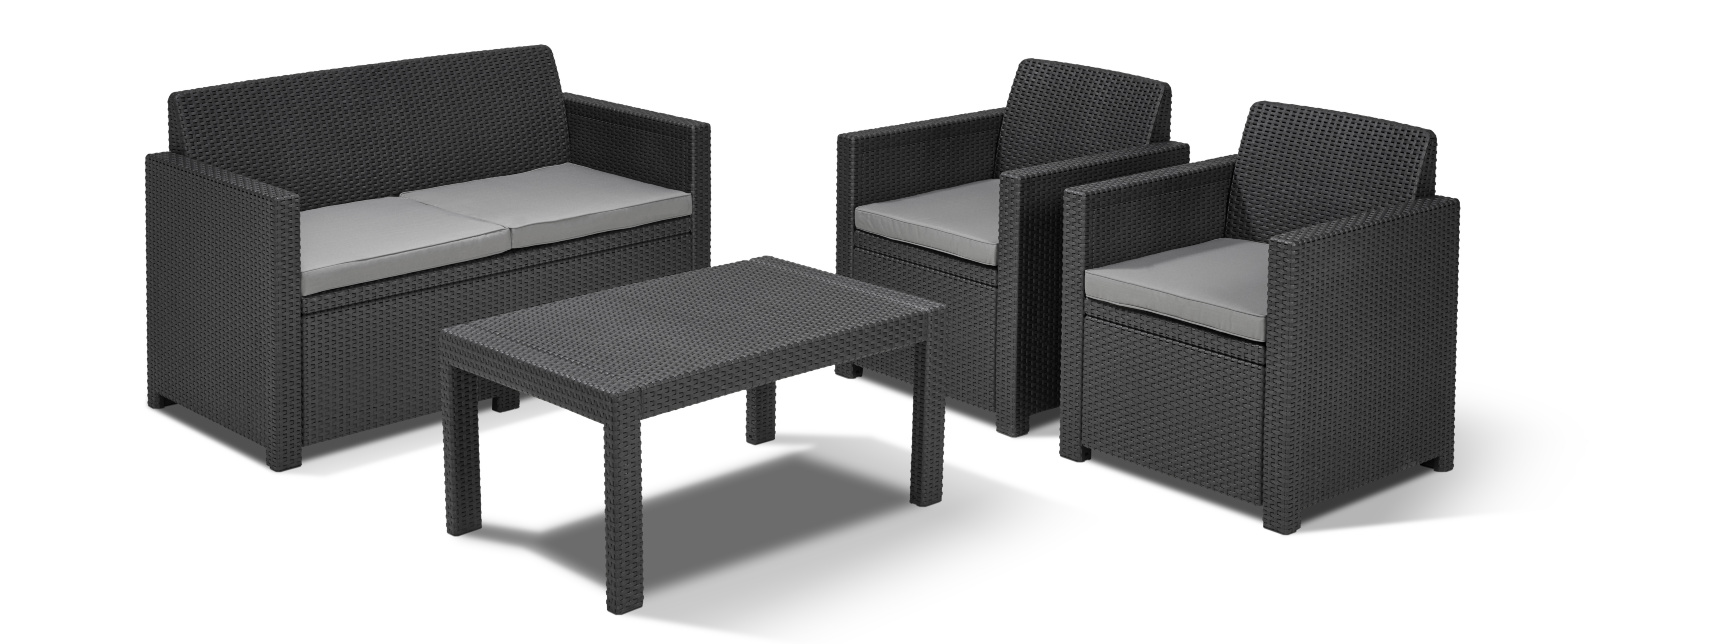 Allibert Sessel Allibert Merano Lounge Set Graphite Allibert